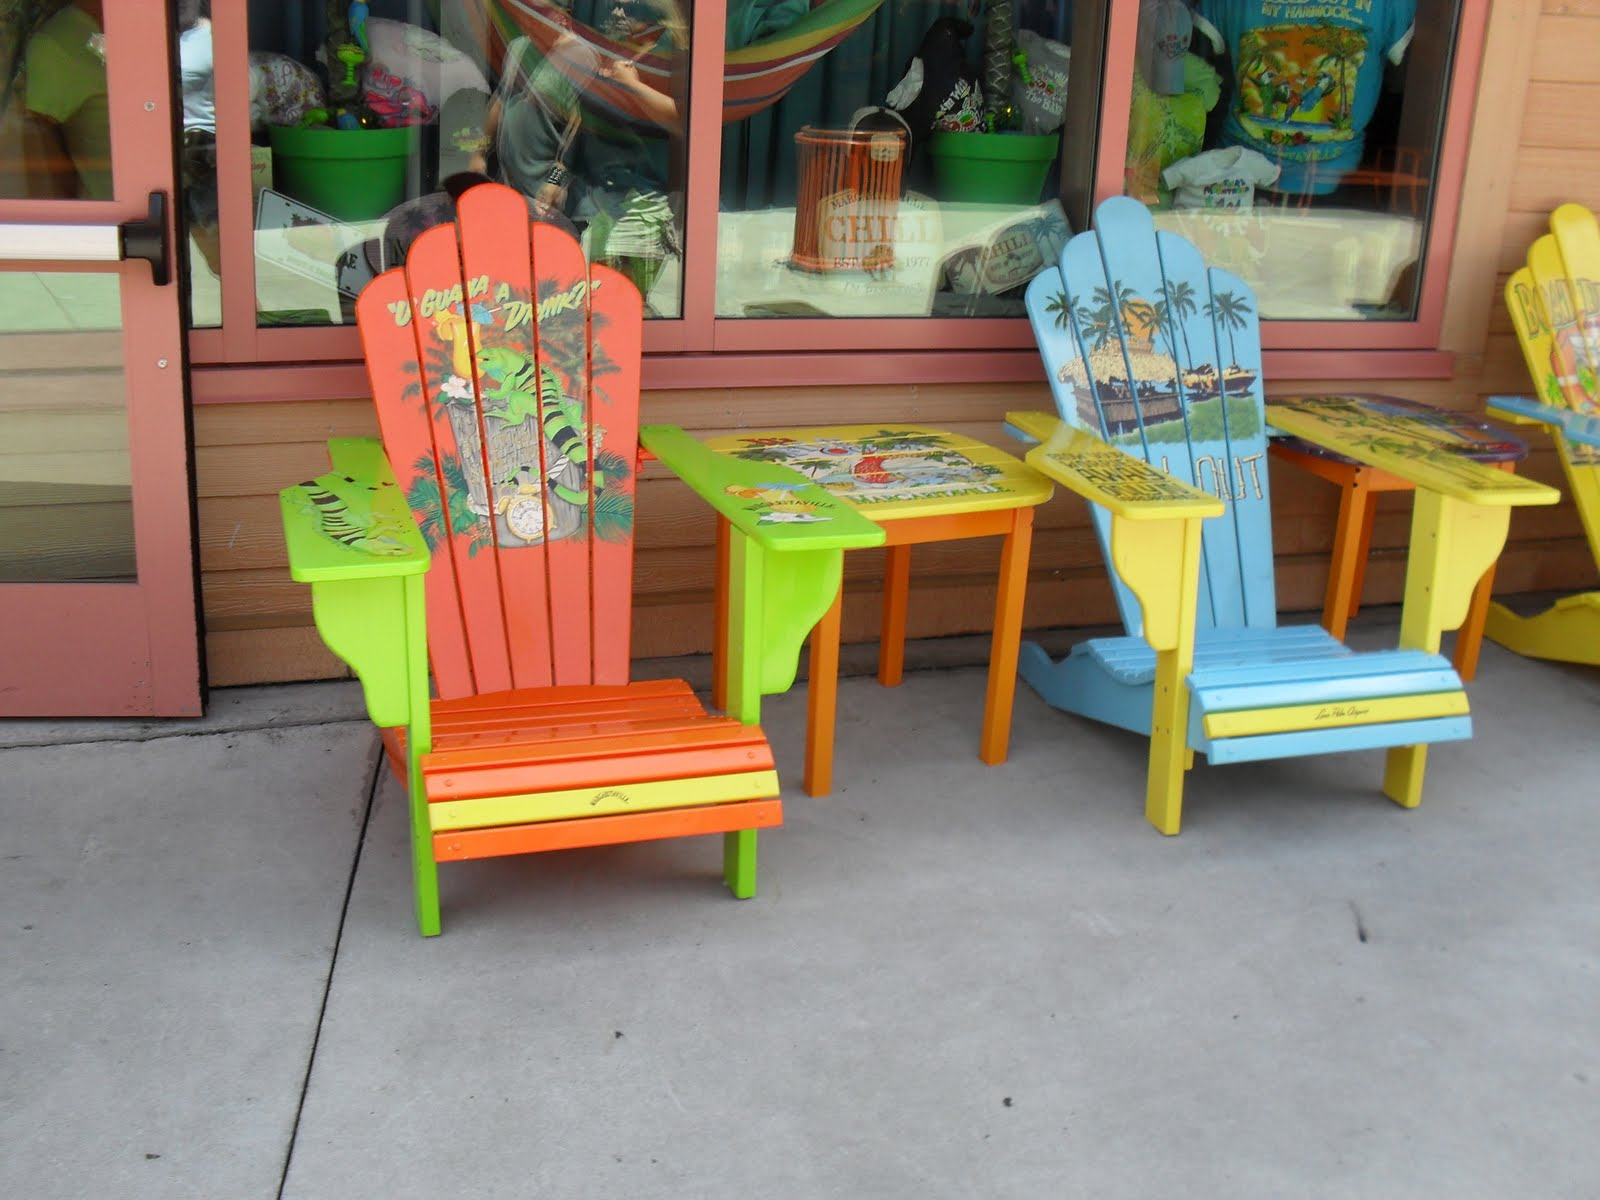 Margaritaville Adirondack Chairs Myfwbs Wasting Away Again In Margaritaville Broadway At